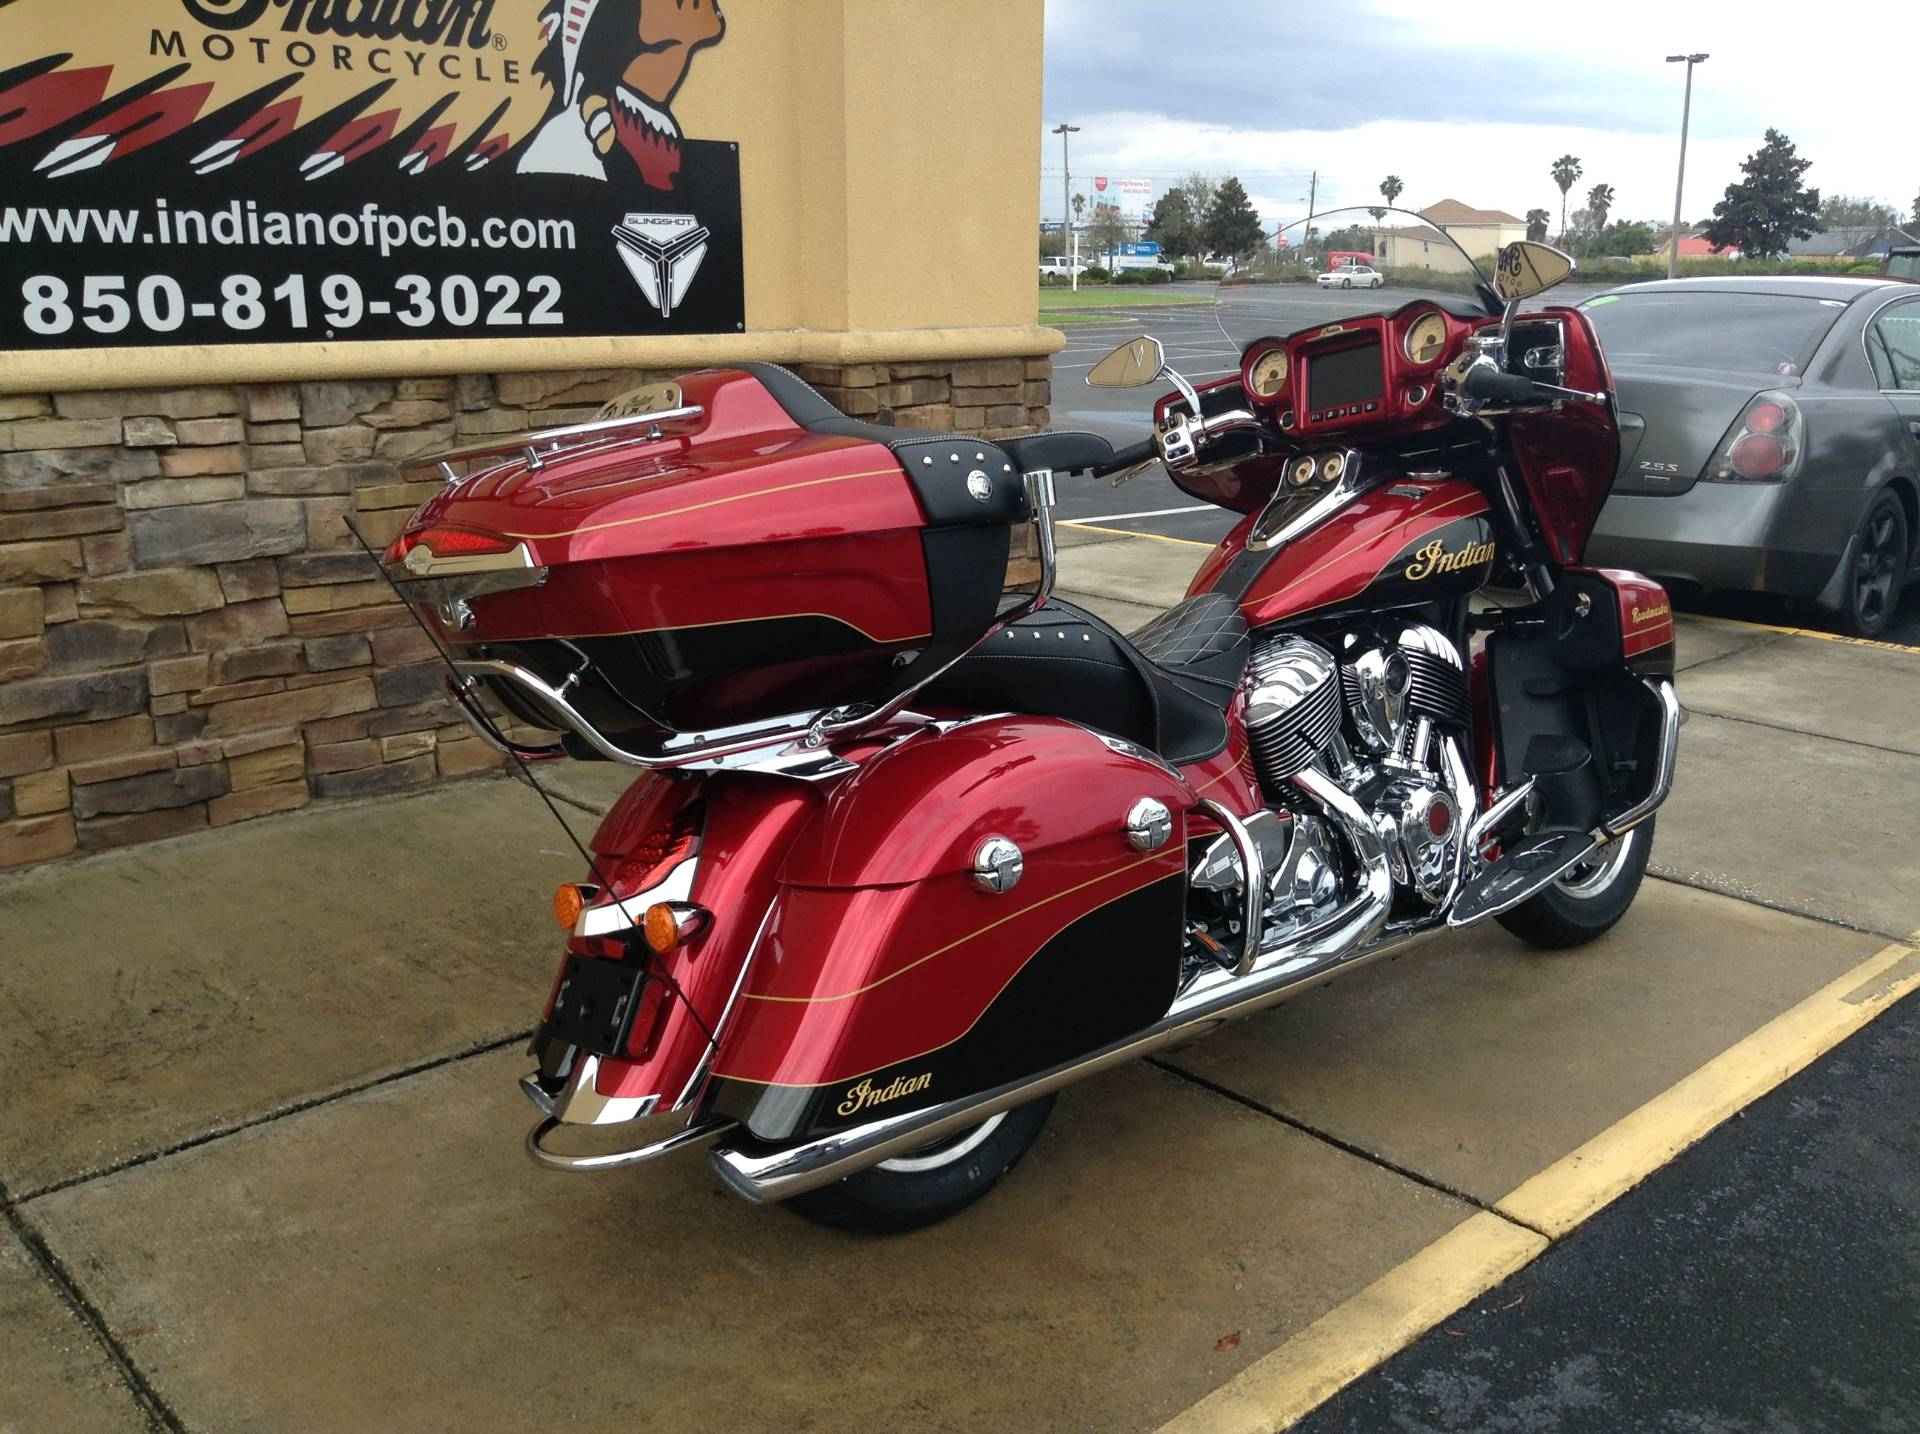 2019 Indian ROAD MASTER ELITE in Panama City Beach, Florida - Photo 3